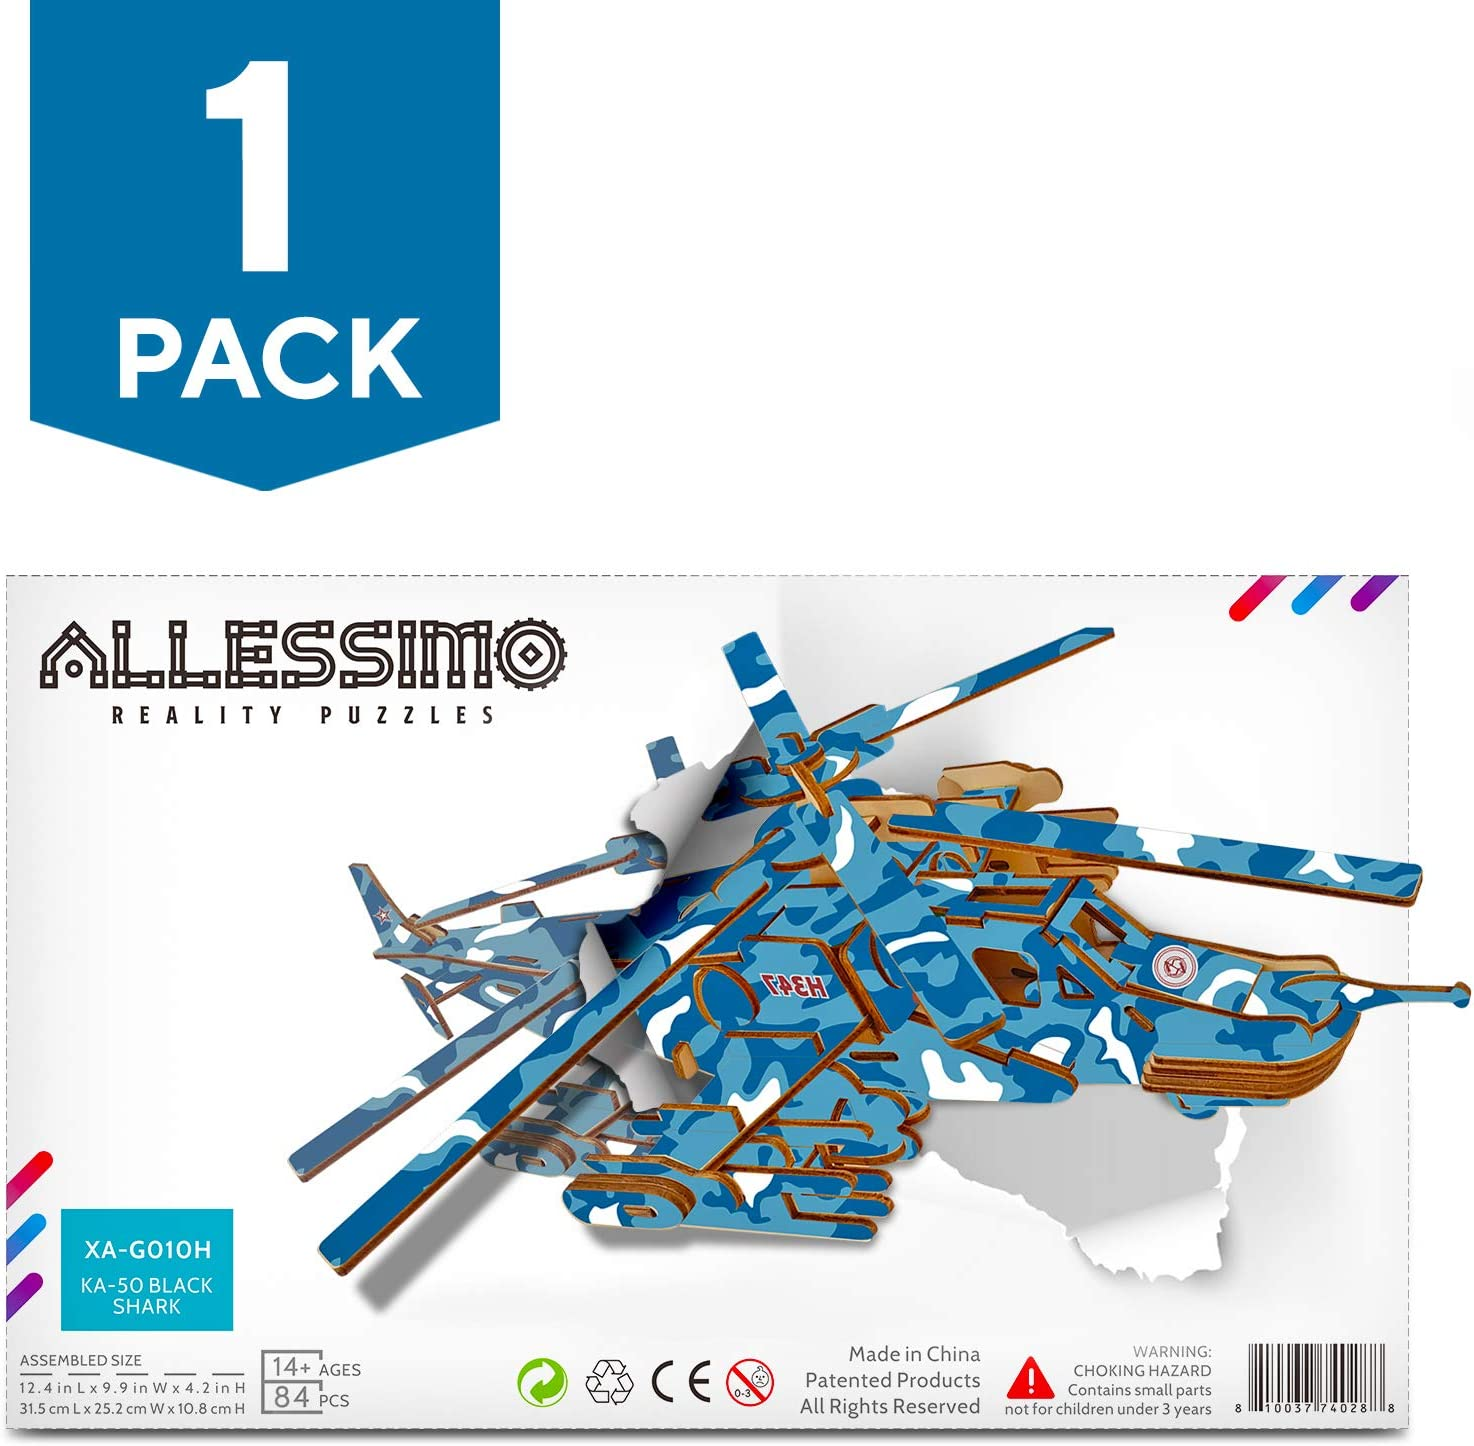 Allessimo Artisolve - 3D Wooden Puzzle Black Shark Assembly Puzzle Kit for Boys Girls Kids Adults Family, Fun and Creative Jigsaw Puzzle, for Ages 14+